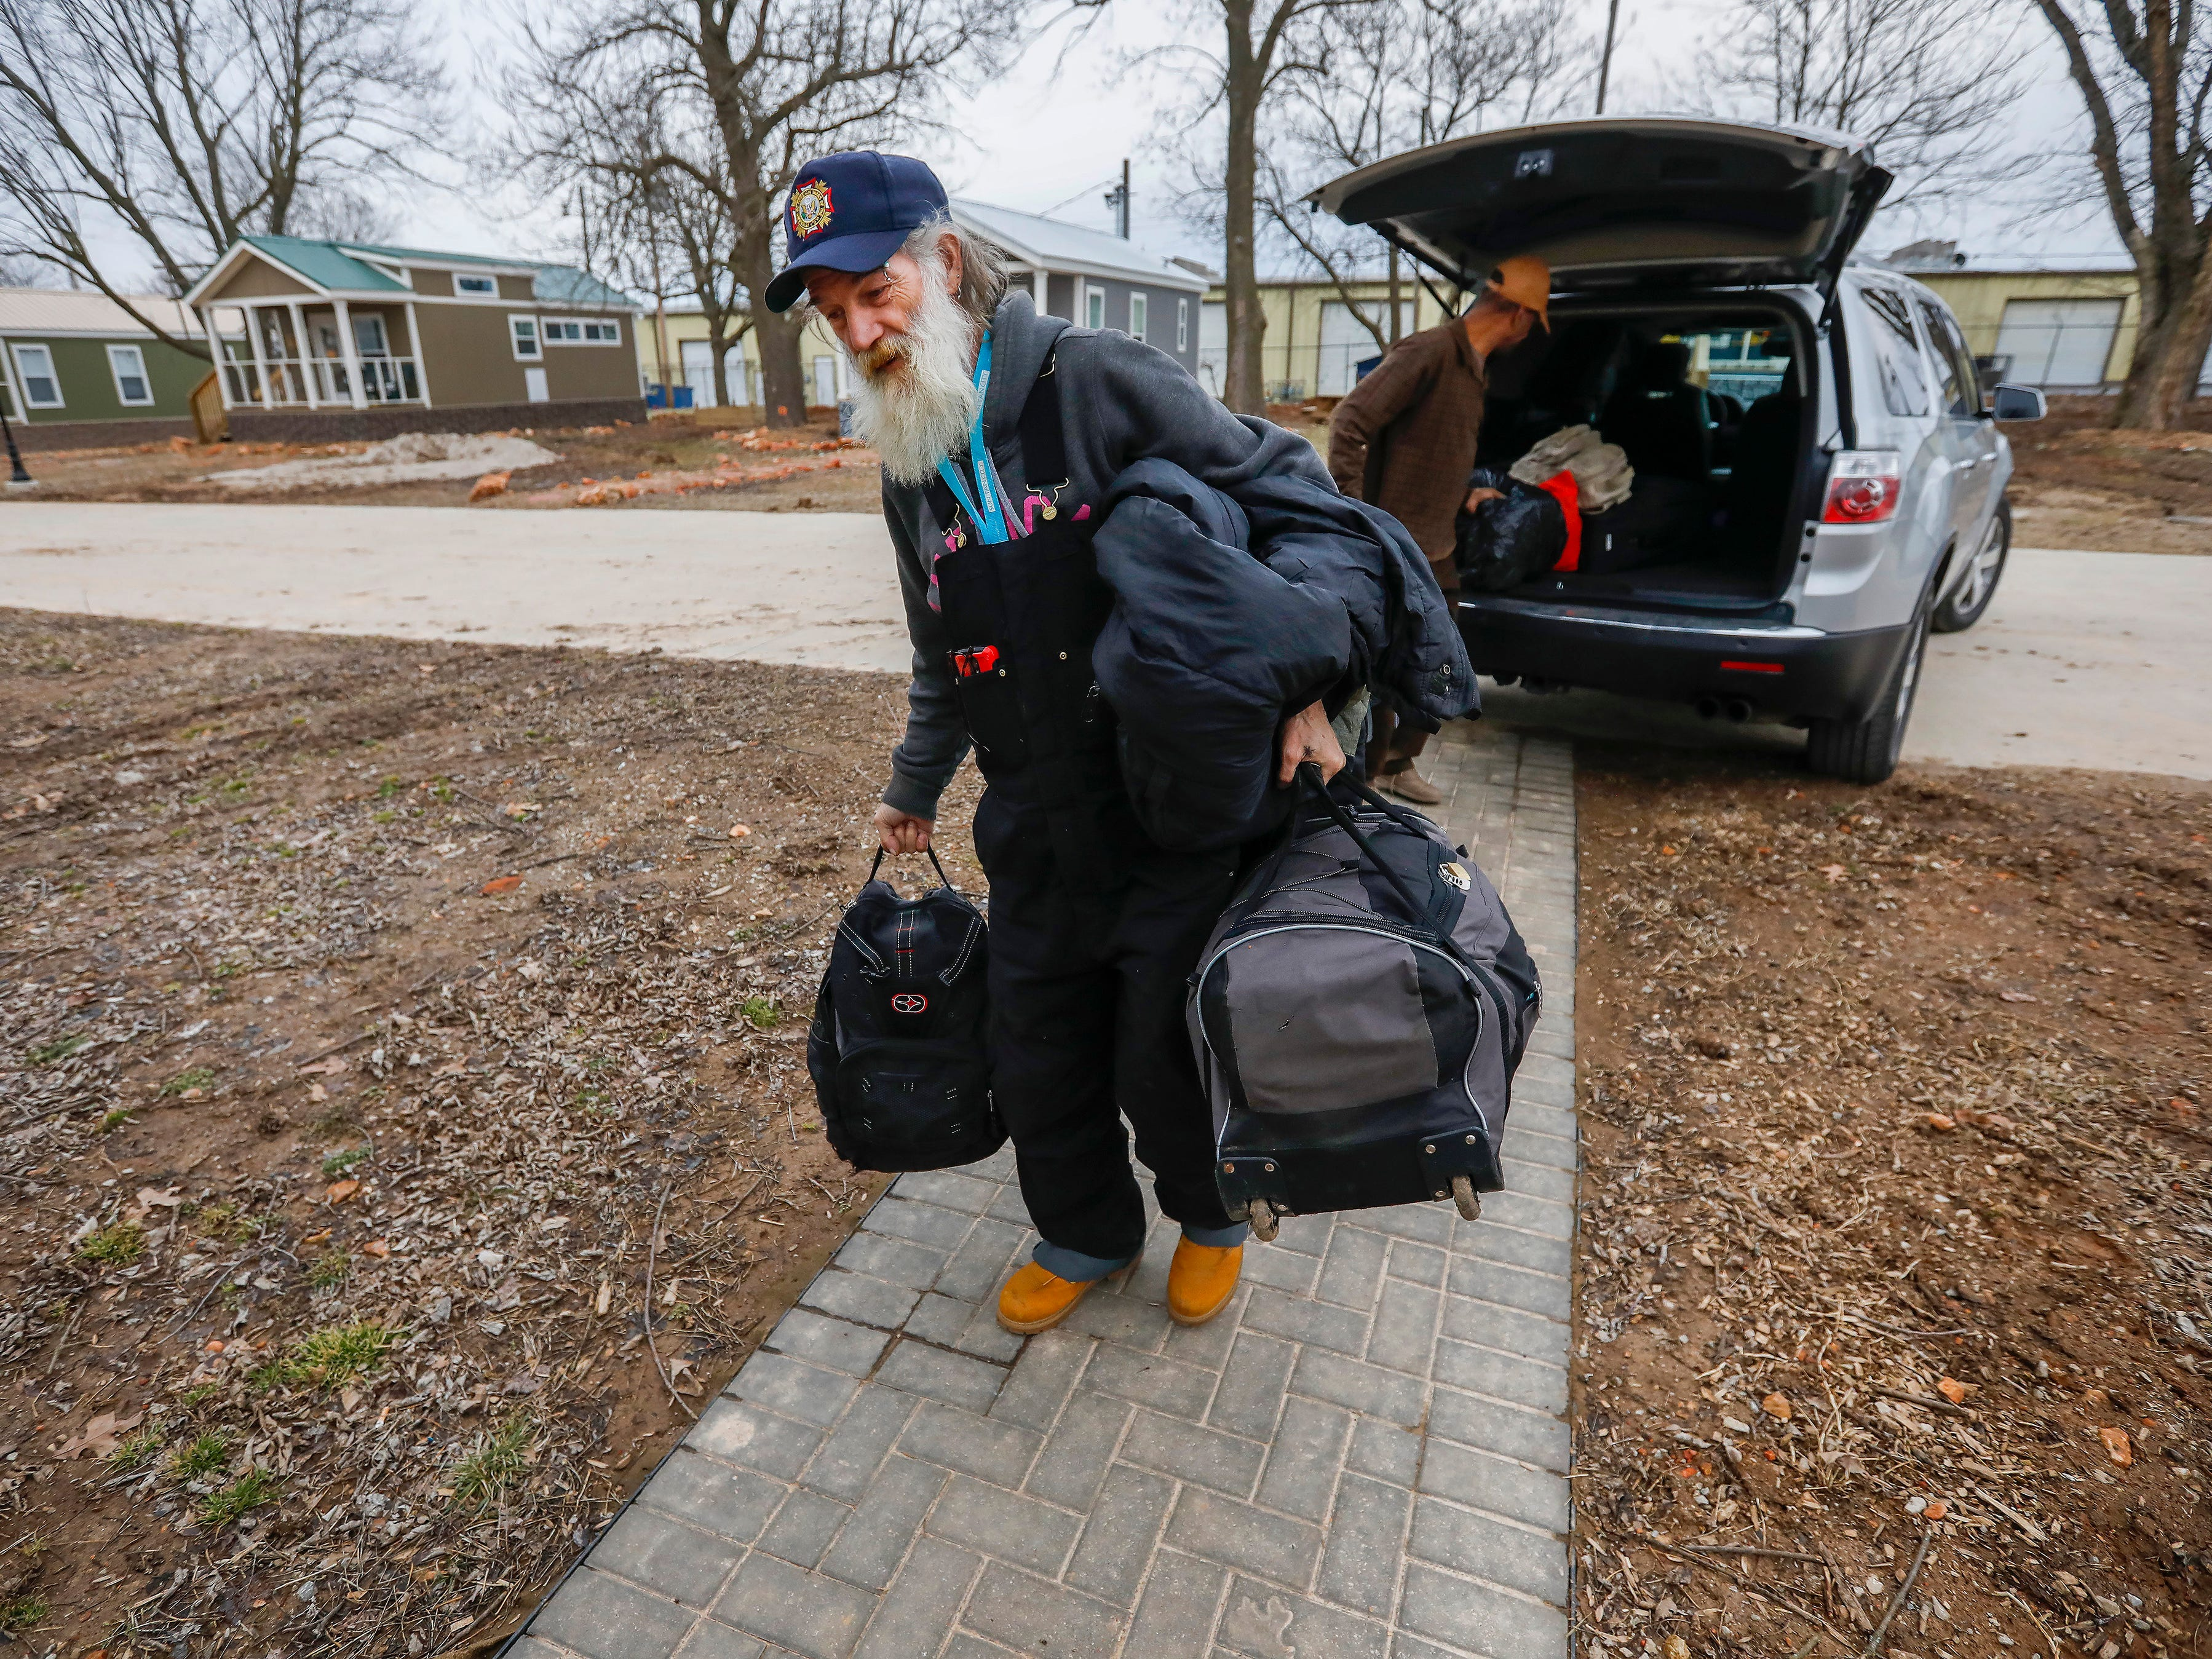 Gil Rife carries his belongings into his new home at Eden Village on Thursday, Feb. 21, 2019.